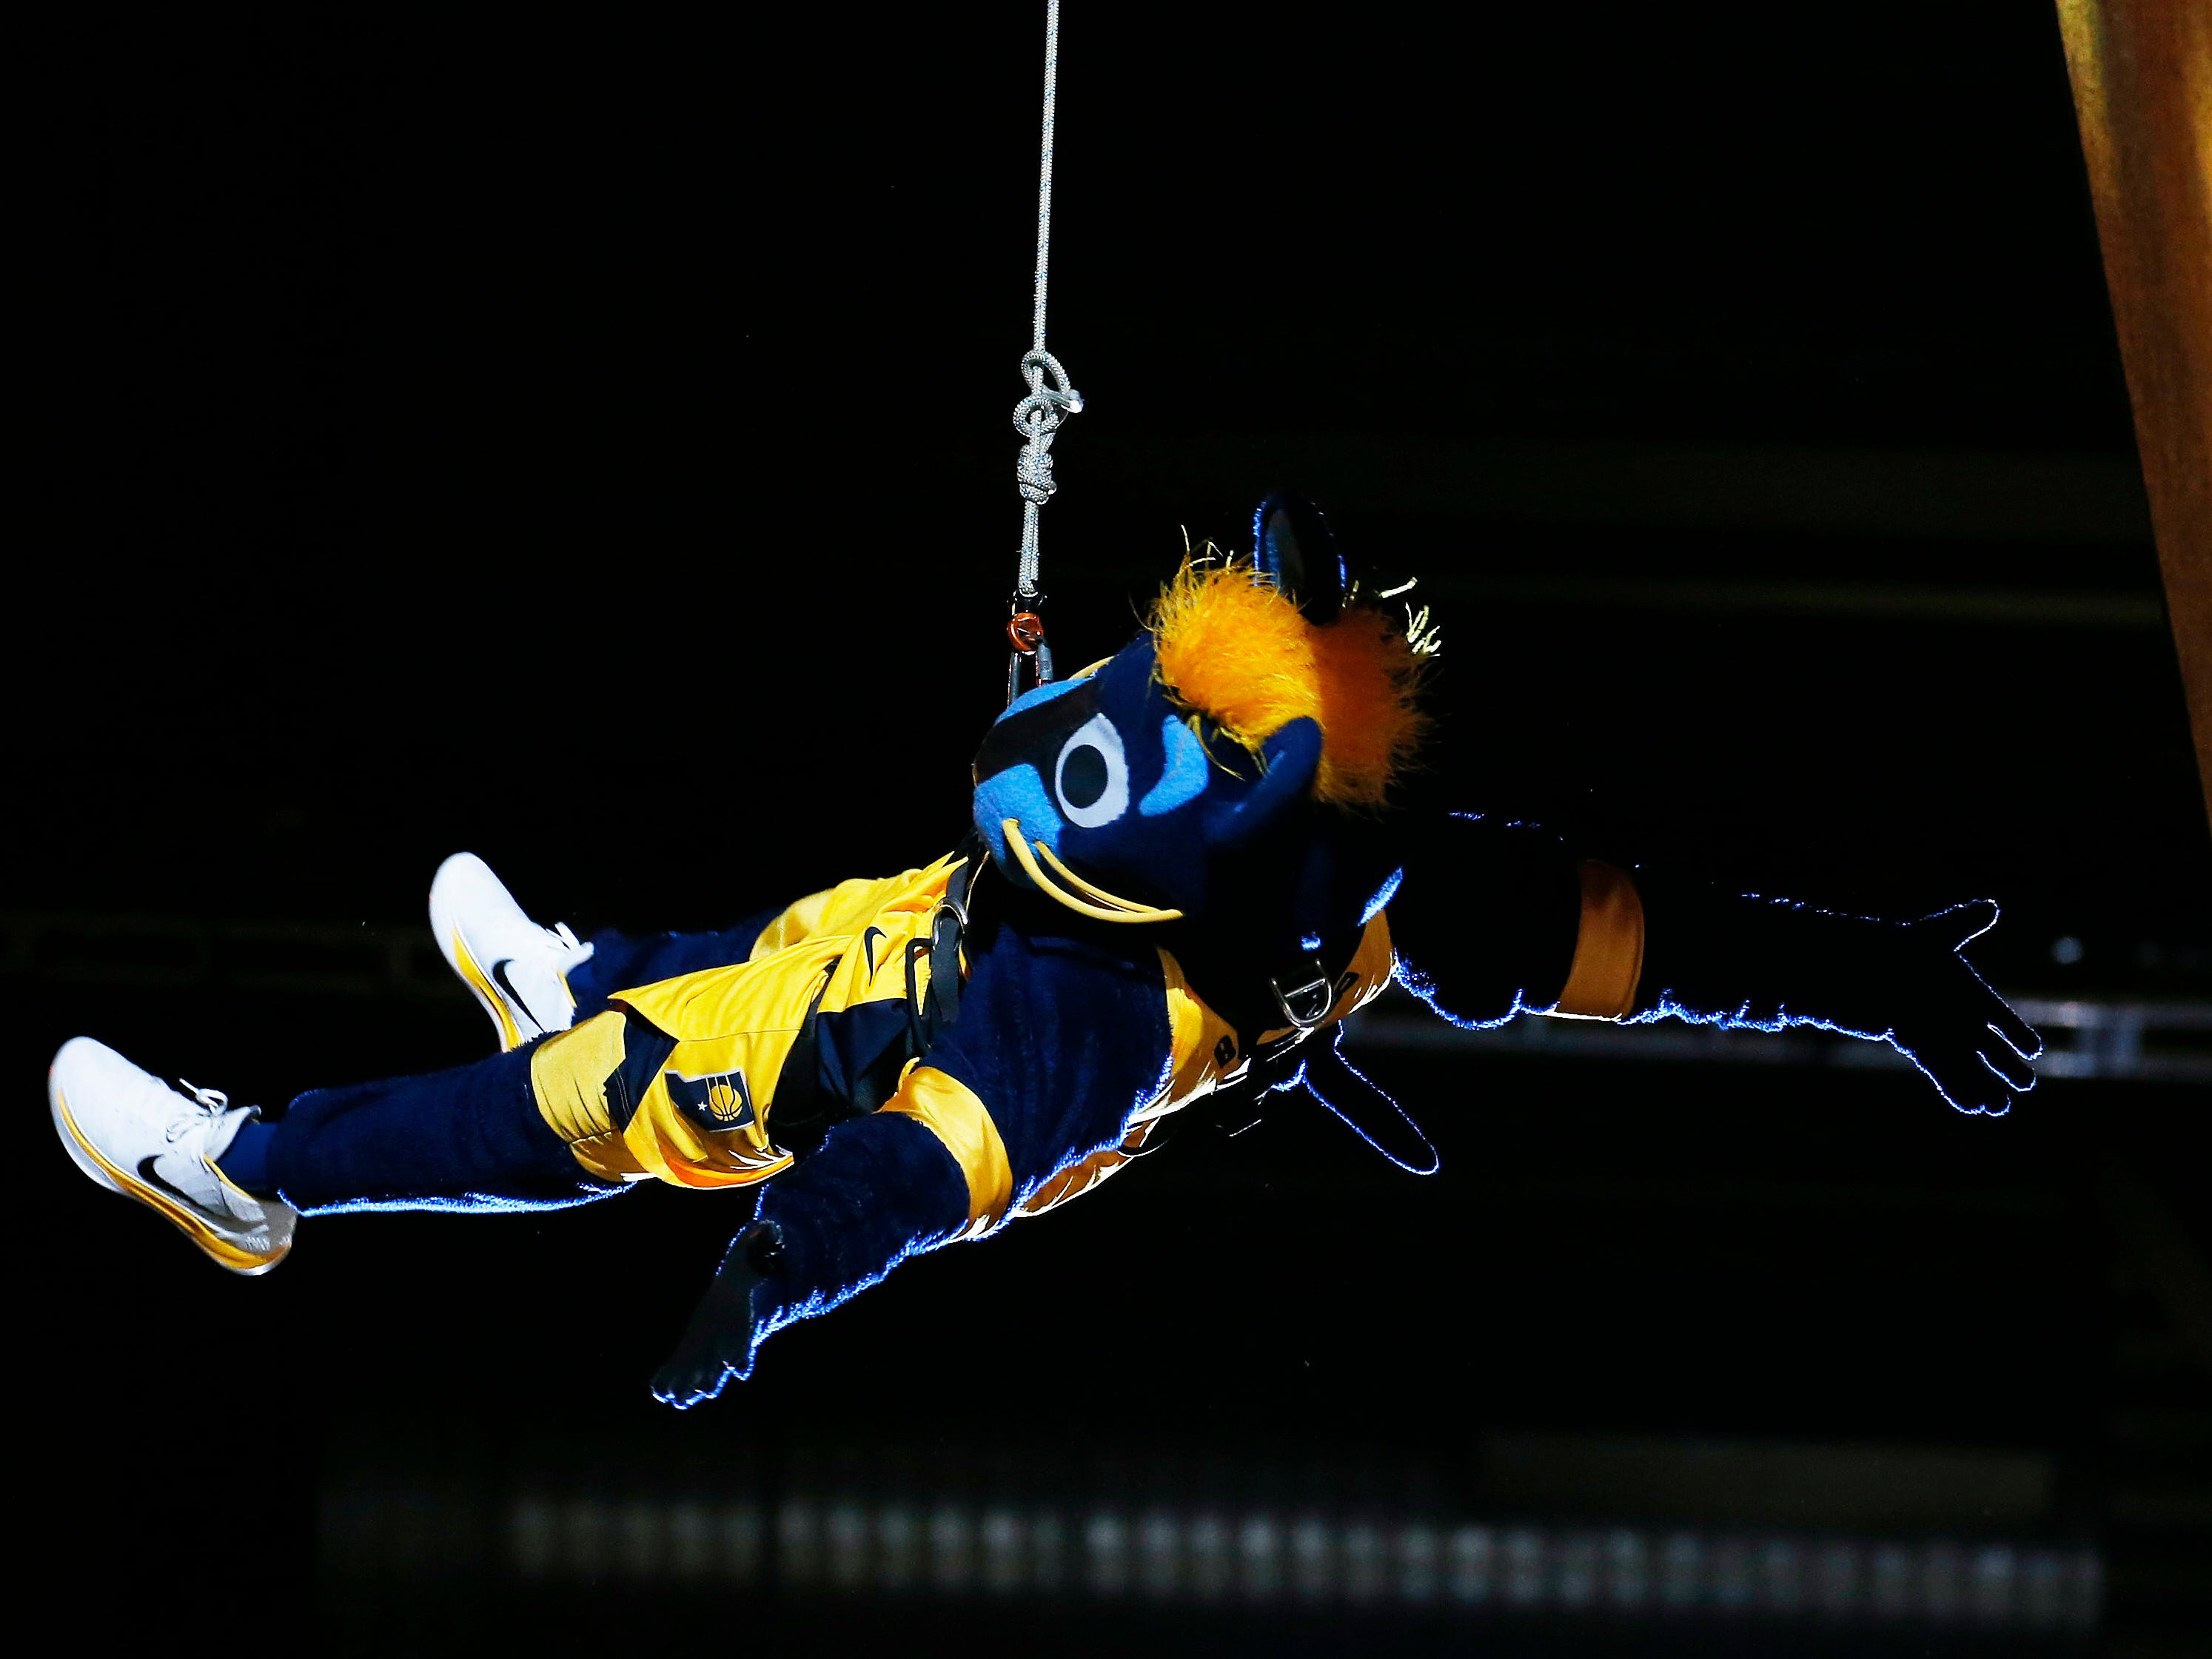 April 21: Pacers mascot Boomer repels from the ceiling of Bankers Life Fieldhouse during Game 4 against the Celtics.